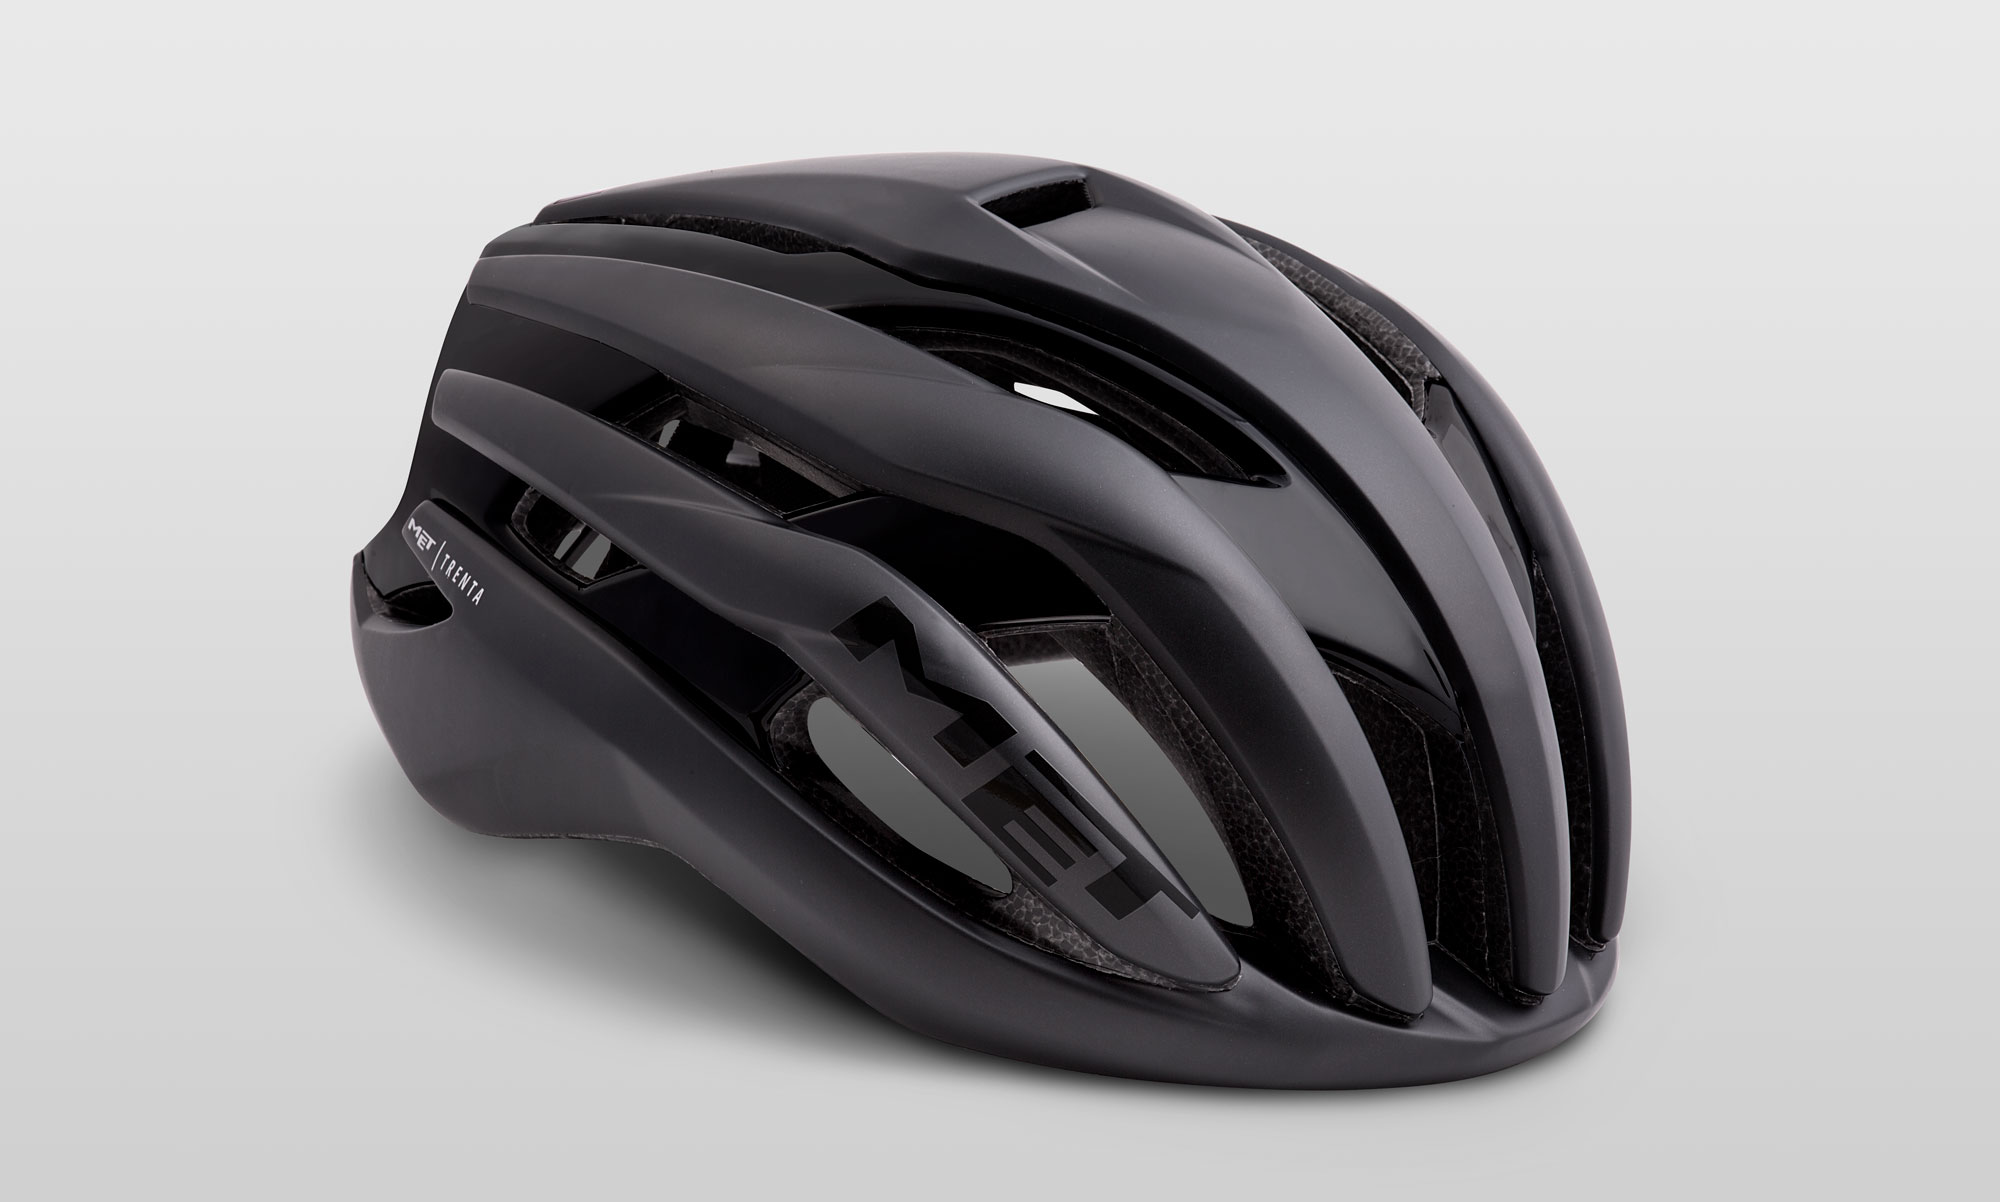 Trenta - Enhanced for use in the peloton, the MET Trenta's tube-shaped tail and internal channeling ensure it performs best when riding in a group, offering up to 7% reduction in drag vs a traditional road helmet.